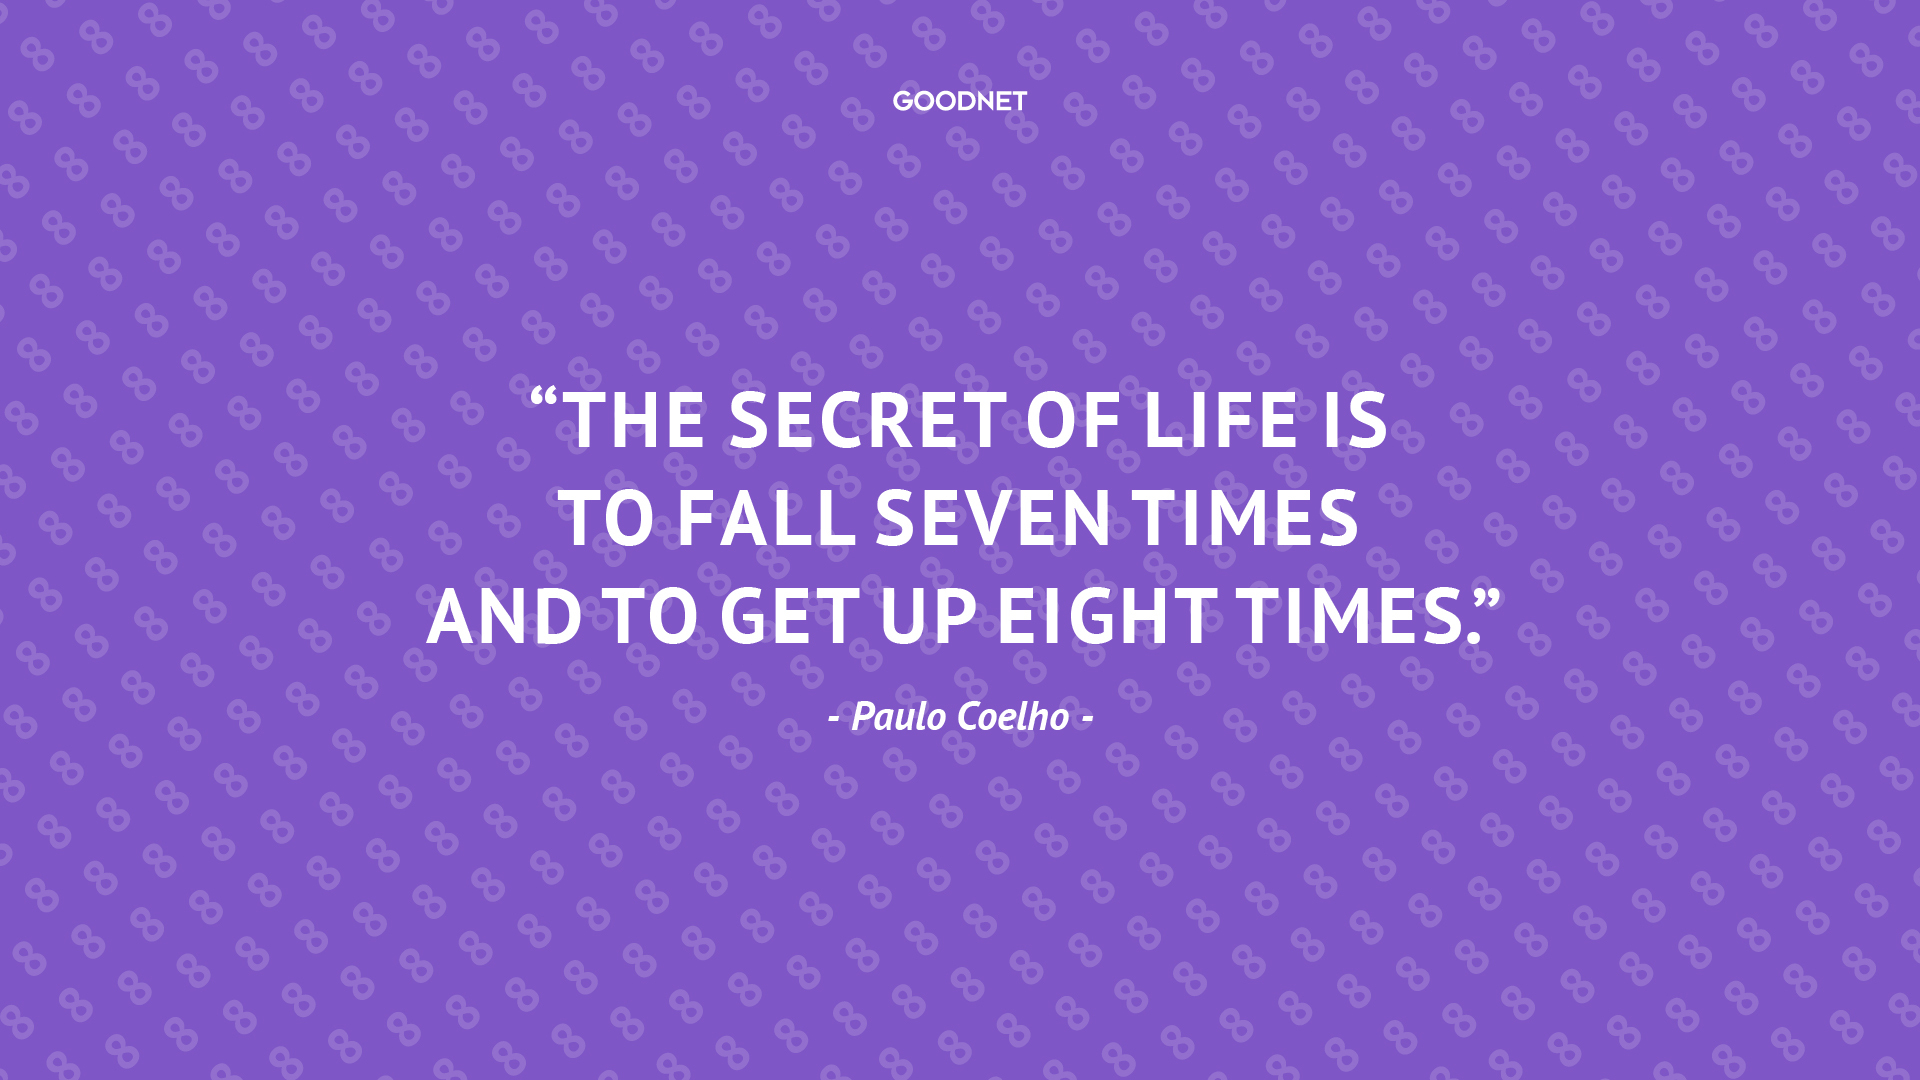 good gallery daily inspirational quotes